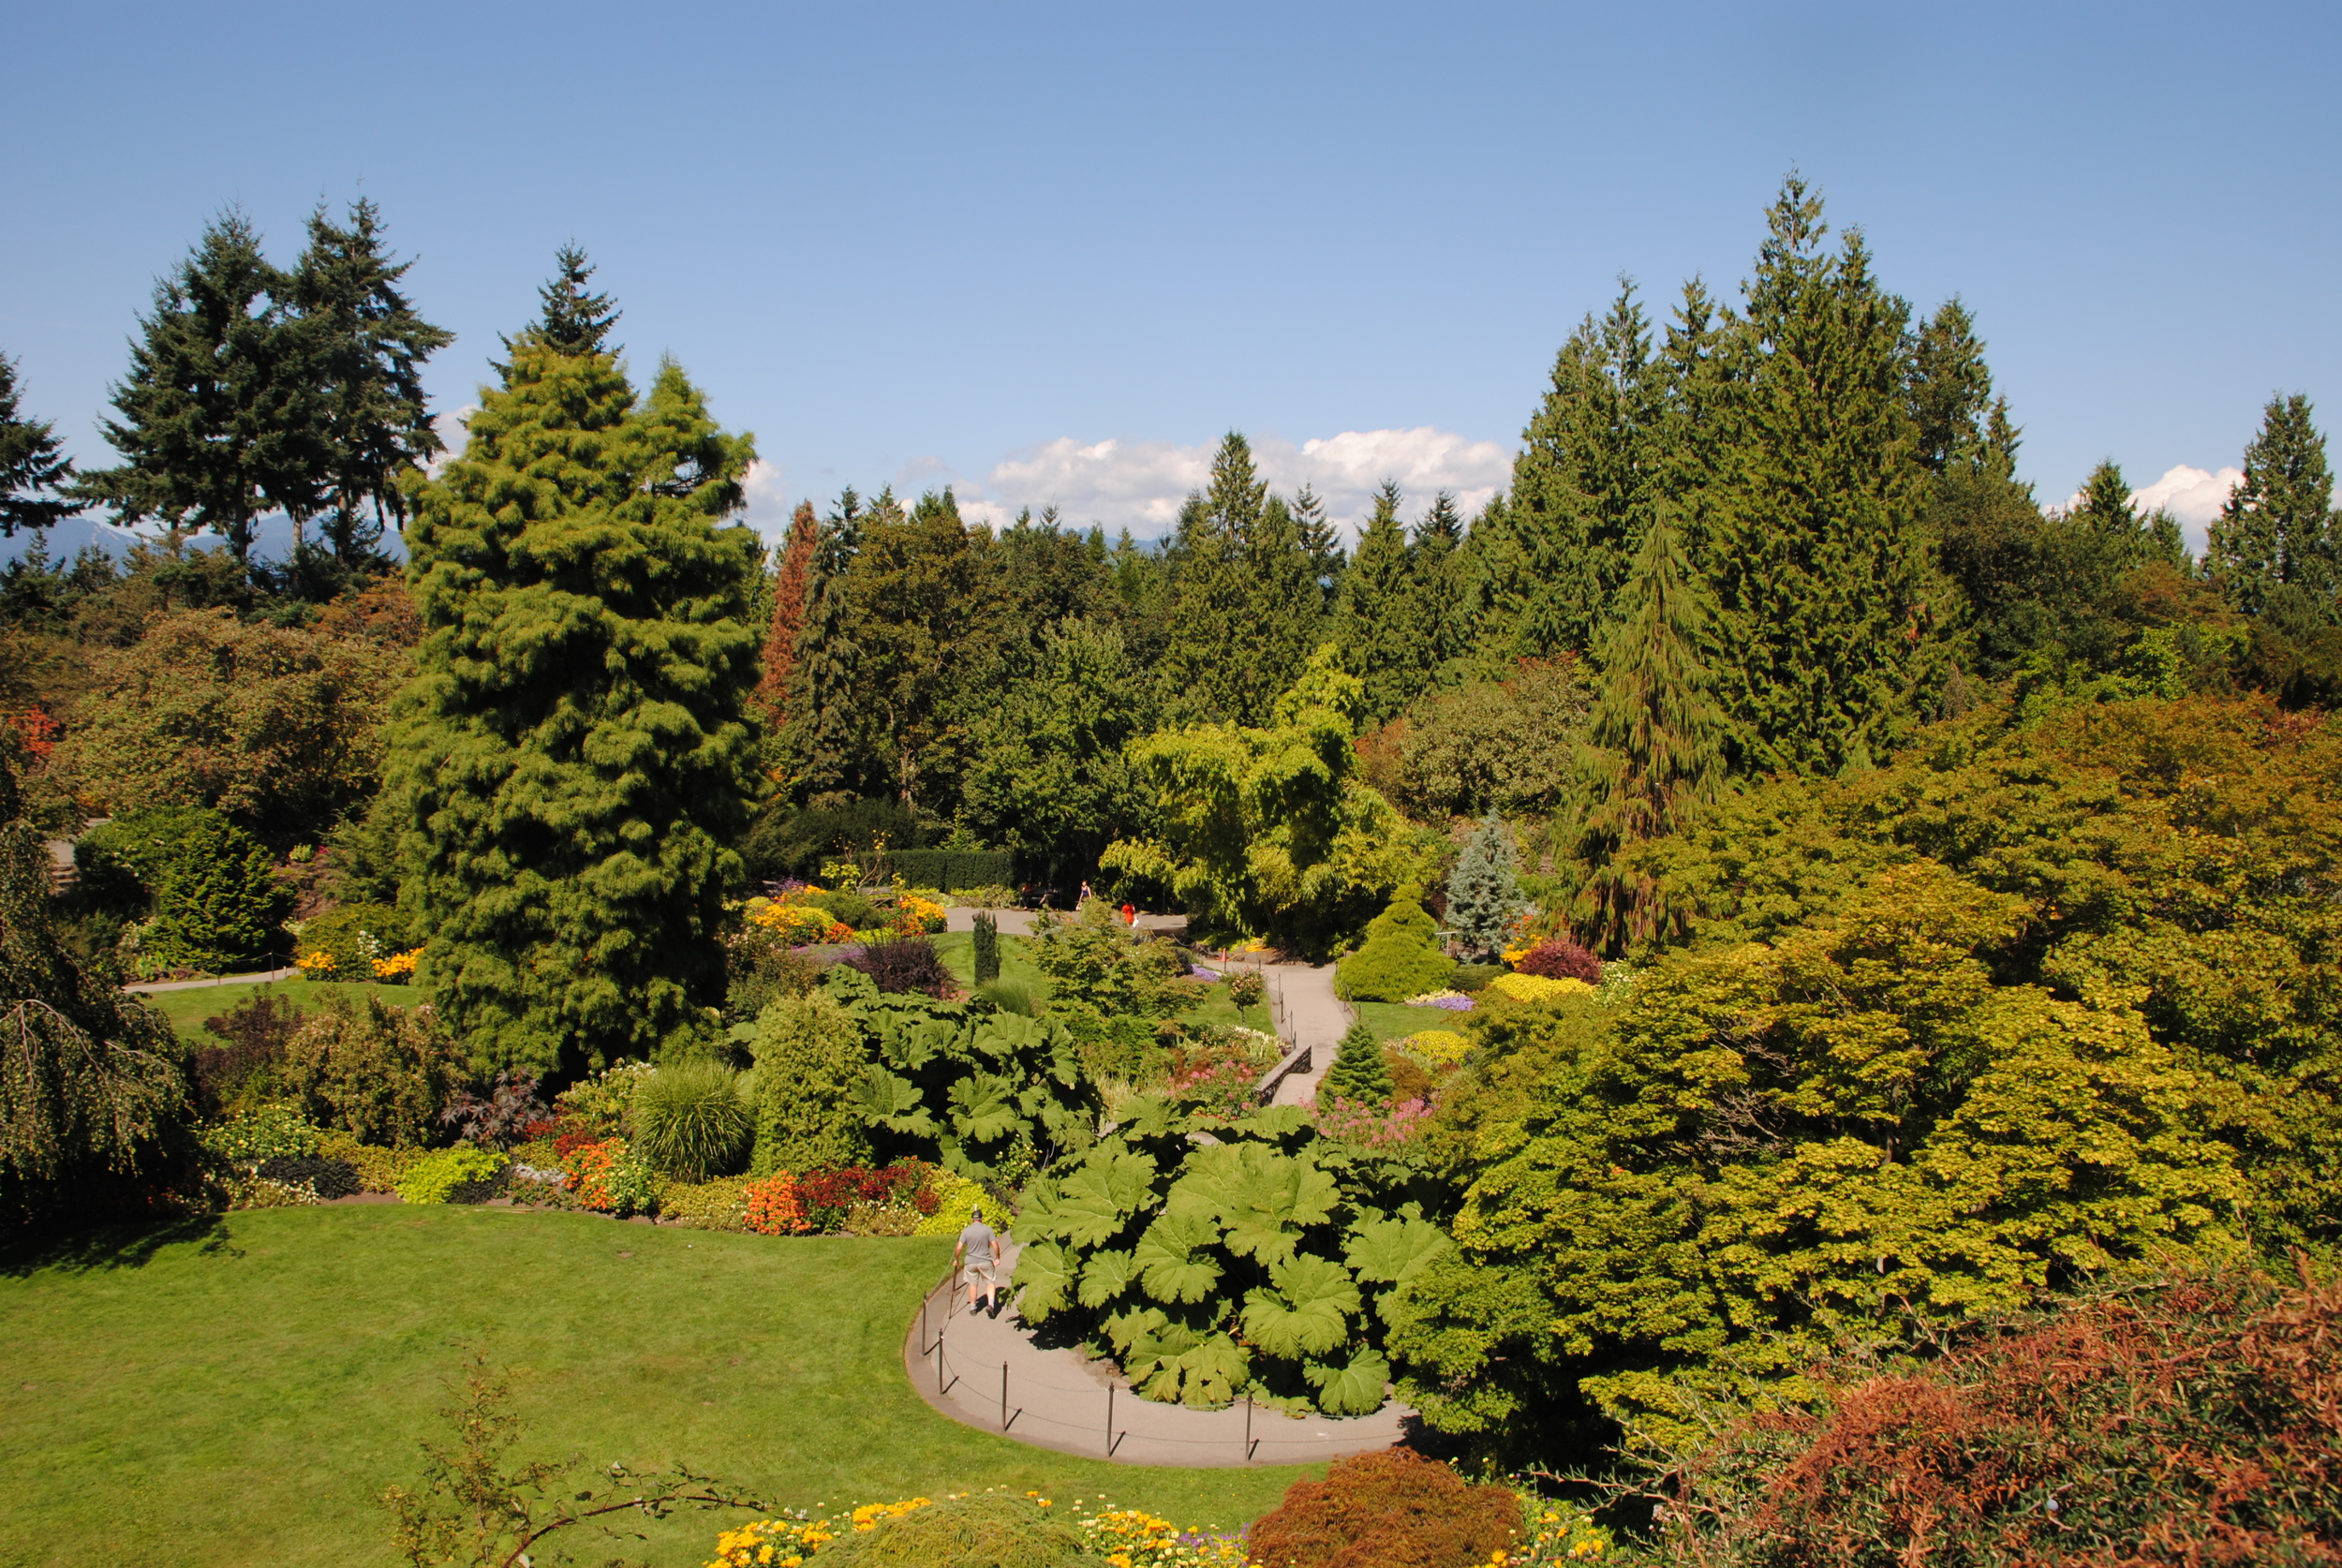 The incredible quarry garden at Queen Elizabeth Park viewed from above.